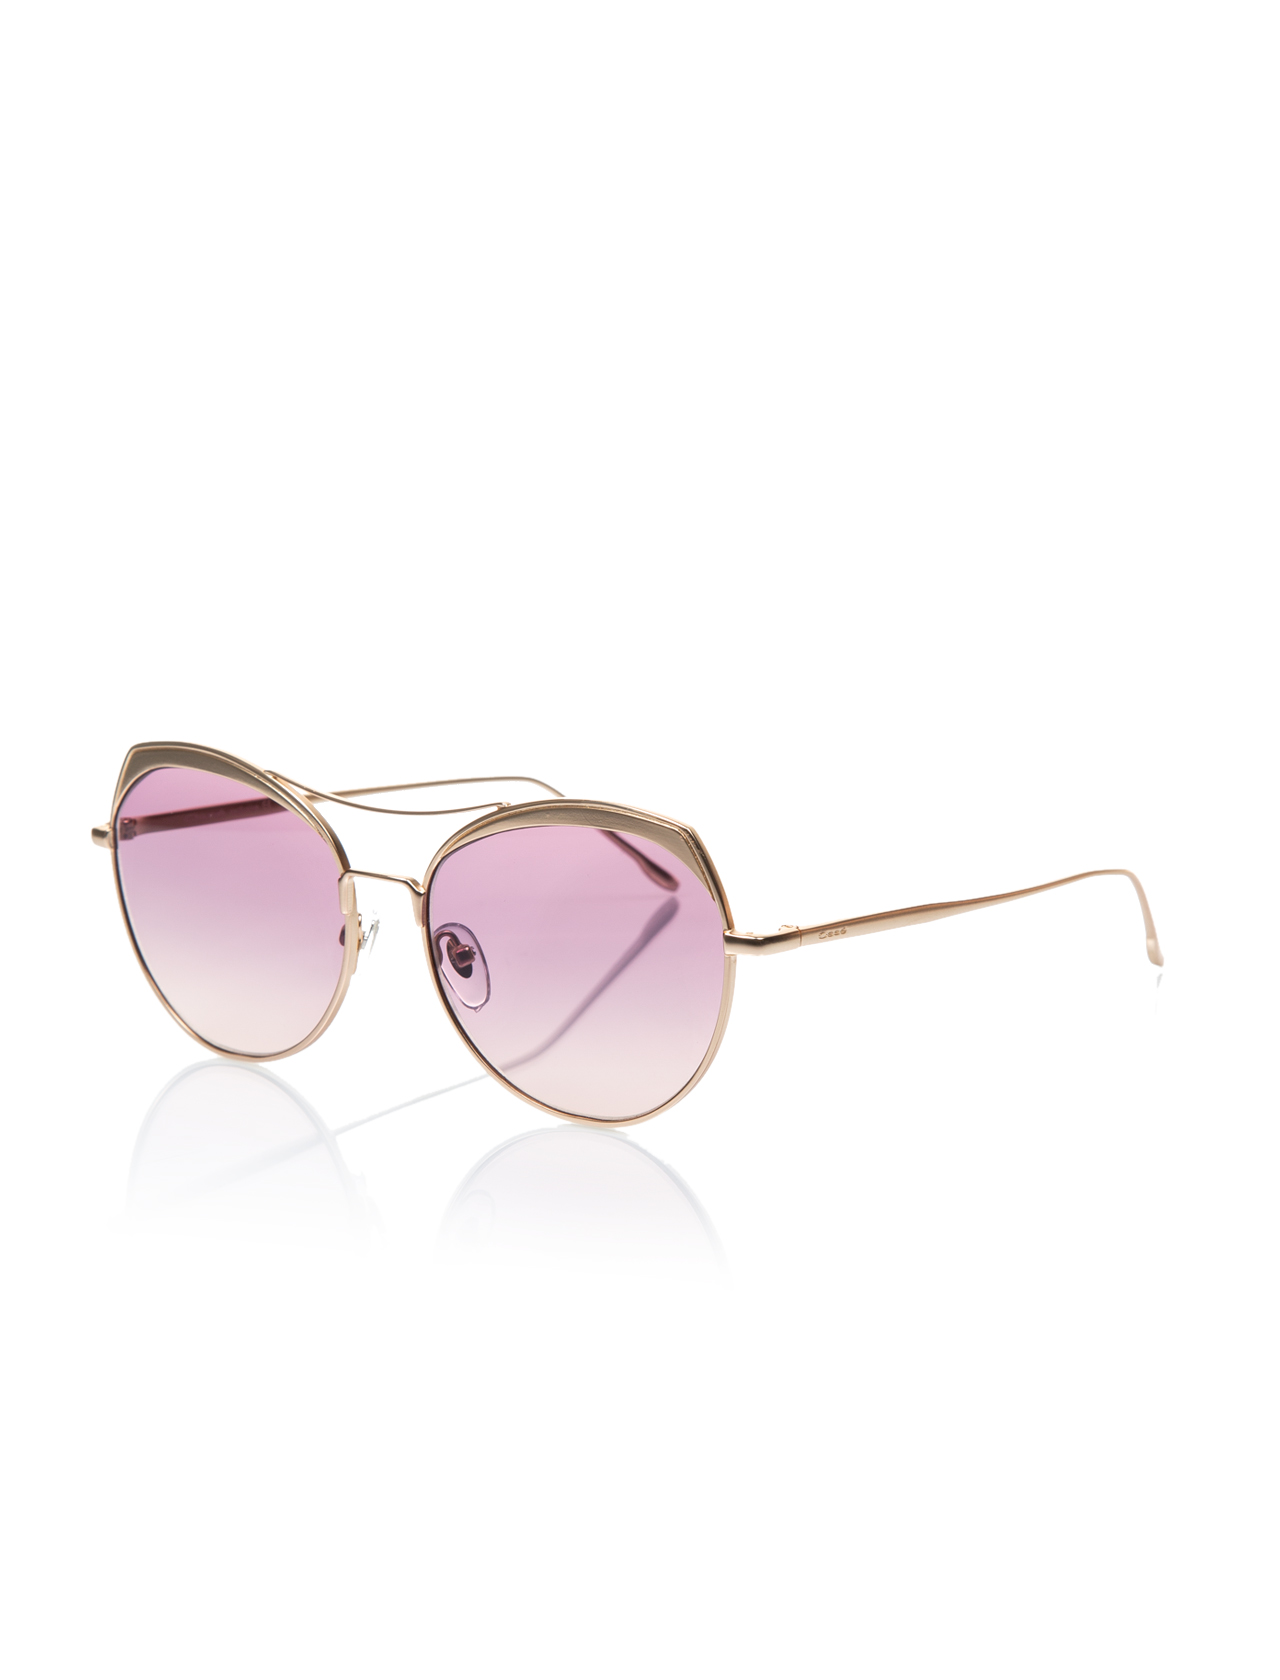 Women's sunglasses os 2633 03 metal gold organic oval aval 57-15-145 osse